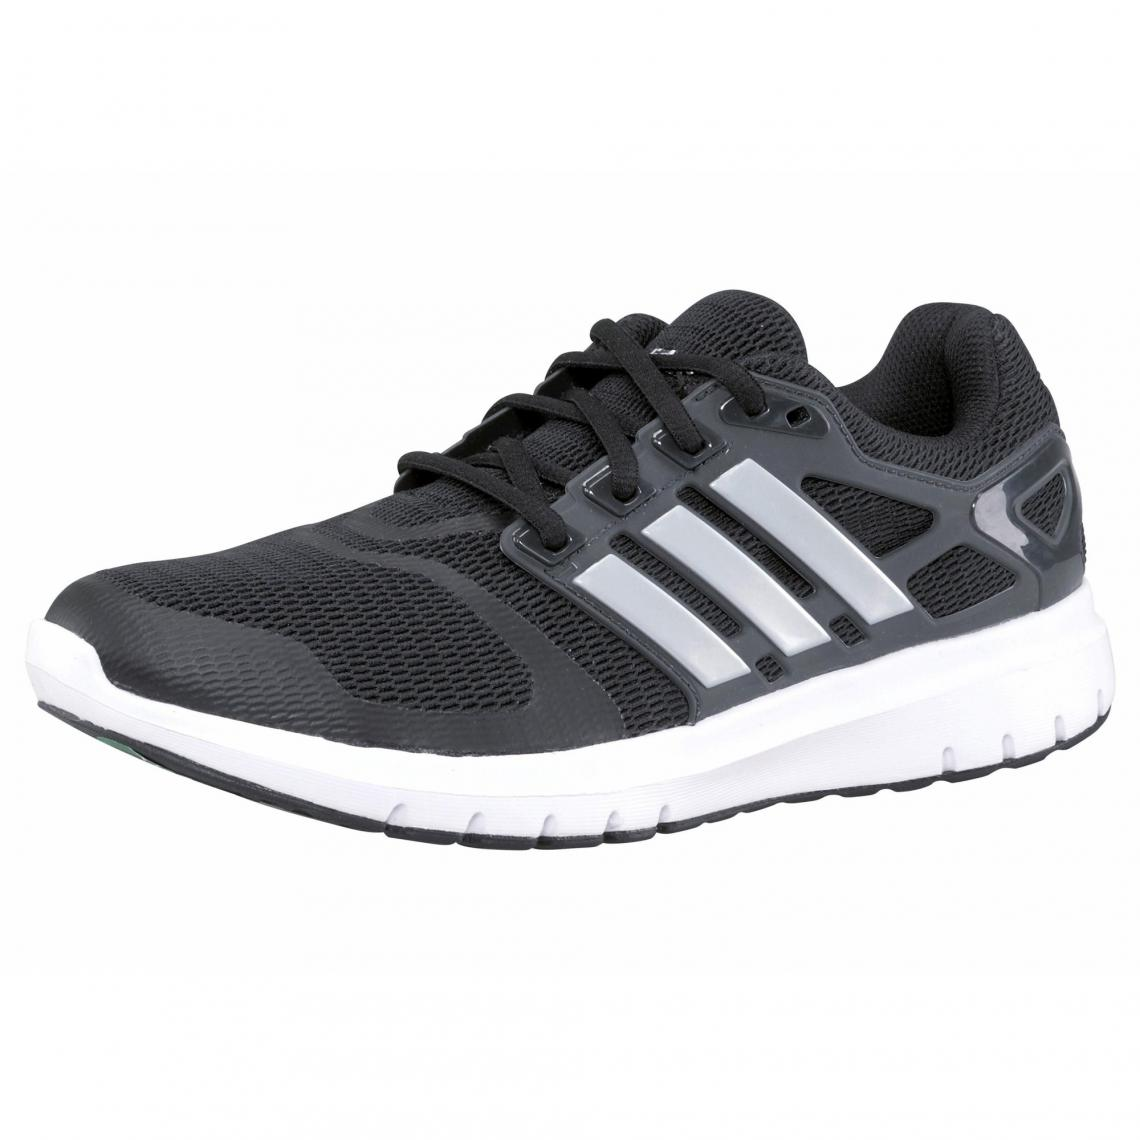 Chaussures Cloud Energy Femme Performance Adidas Noir De Running OwPq6HWFax